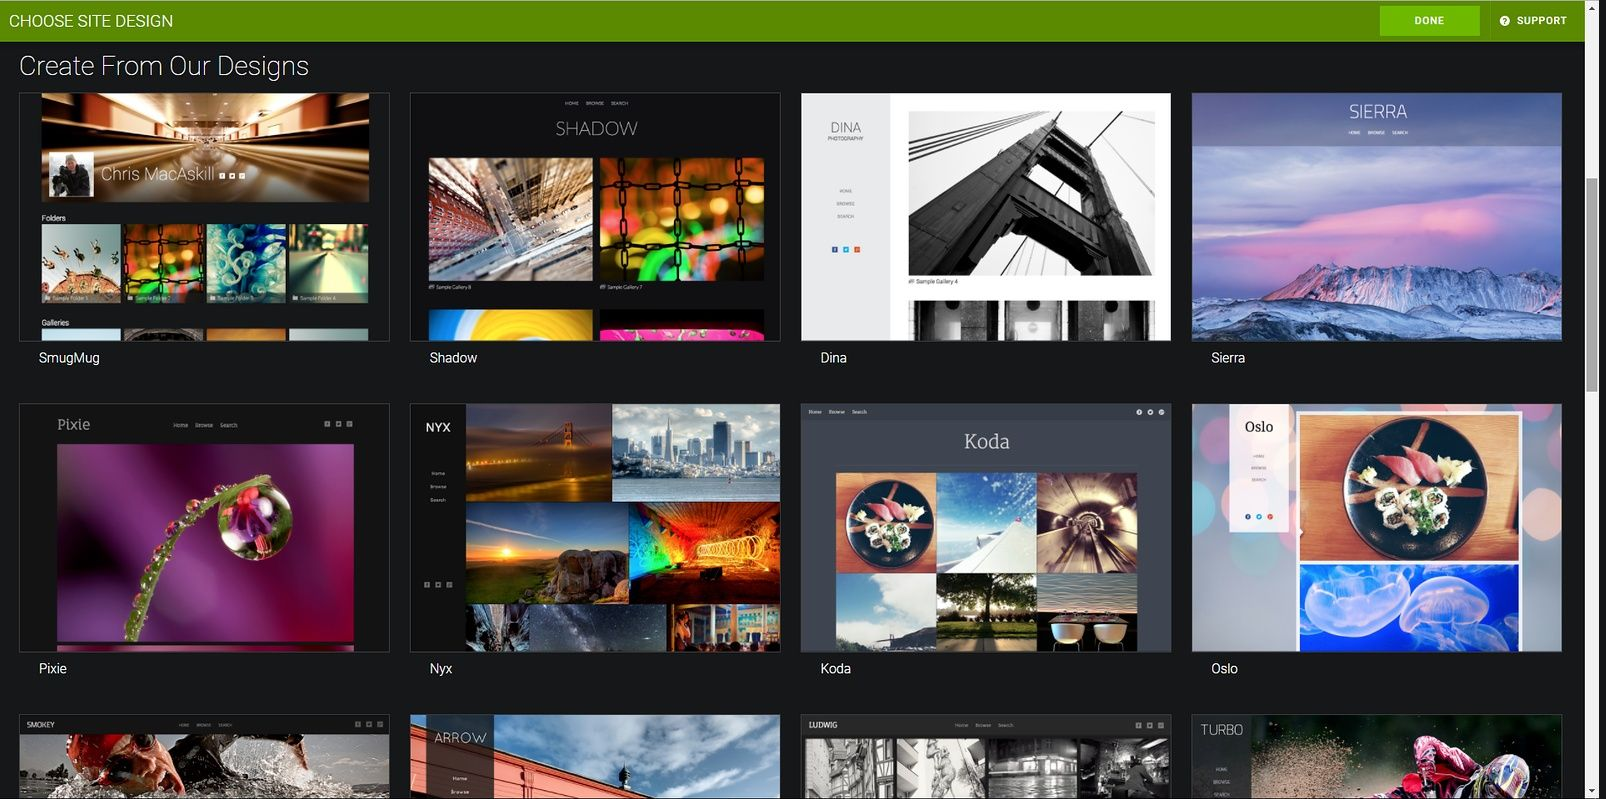 smugmug chooses site design options_2